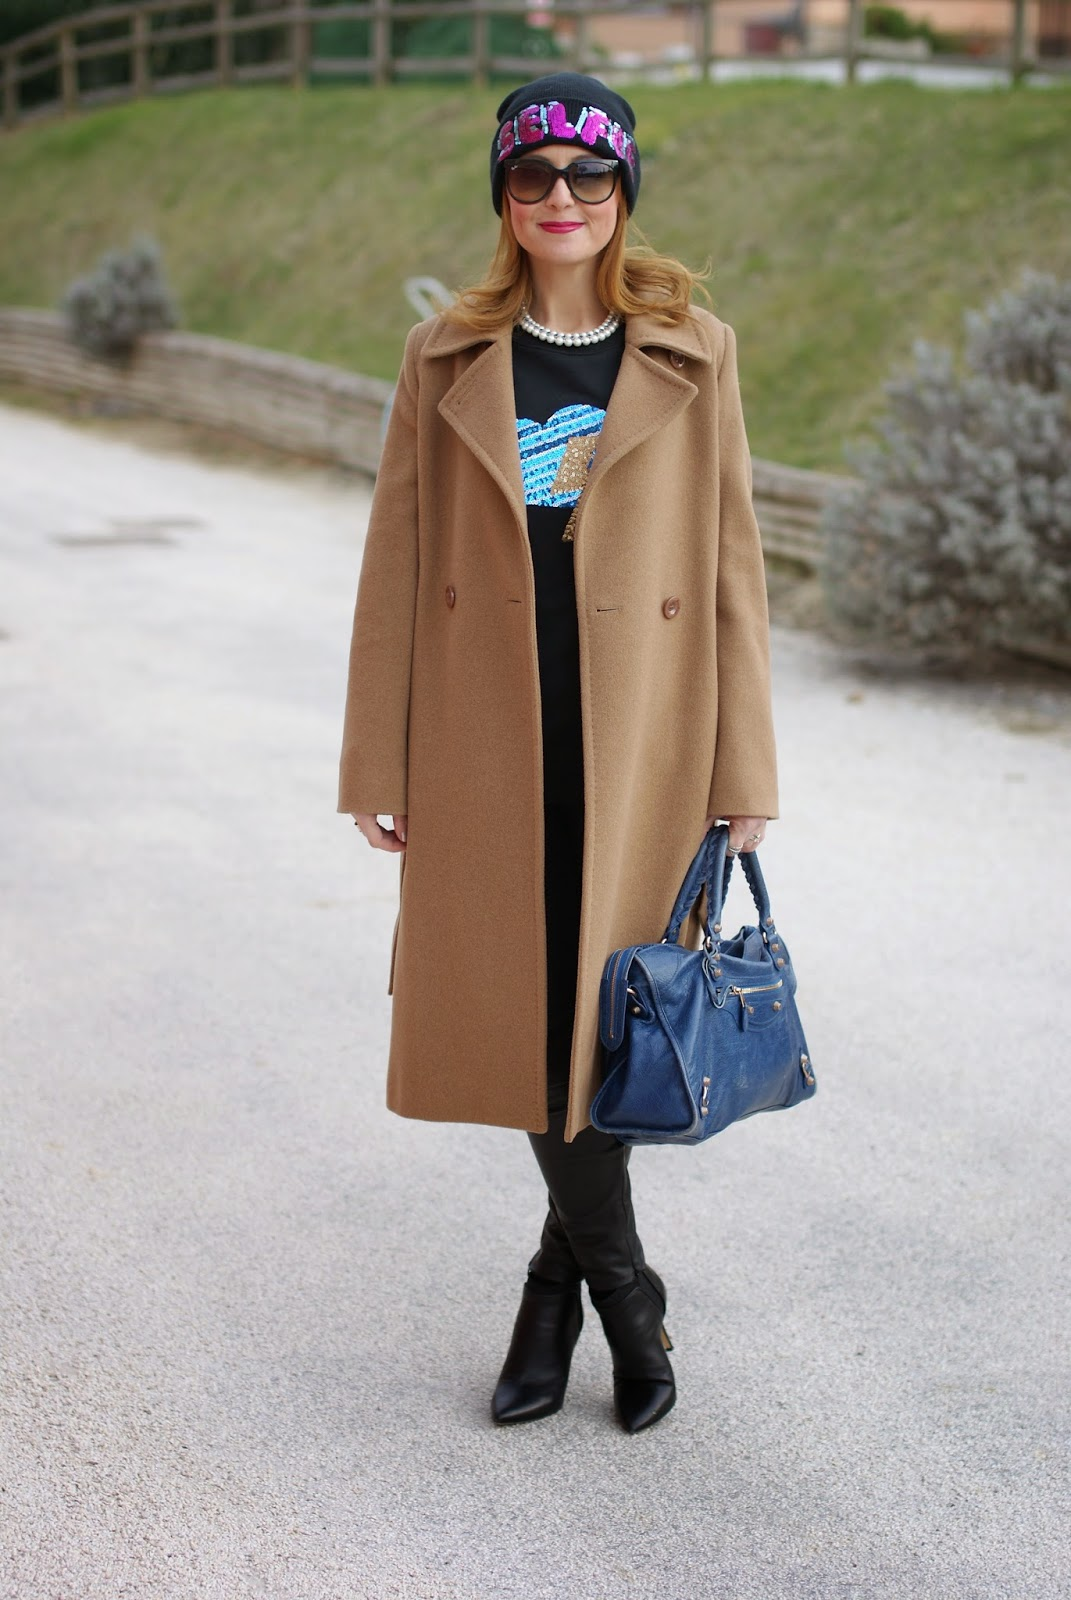 Balenciaga city bag blue, Luca Barra collana perle, Max Mara coat, sunglassesshop italia ray-ban cat eye sunglasses, Fashion and Cookies fashion blog, fashion blogger